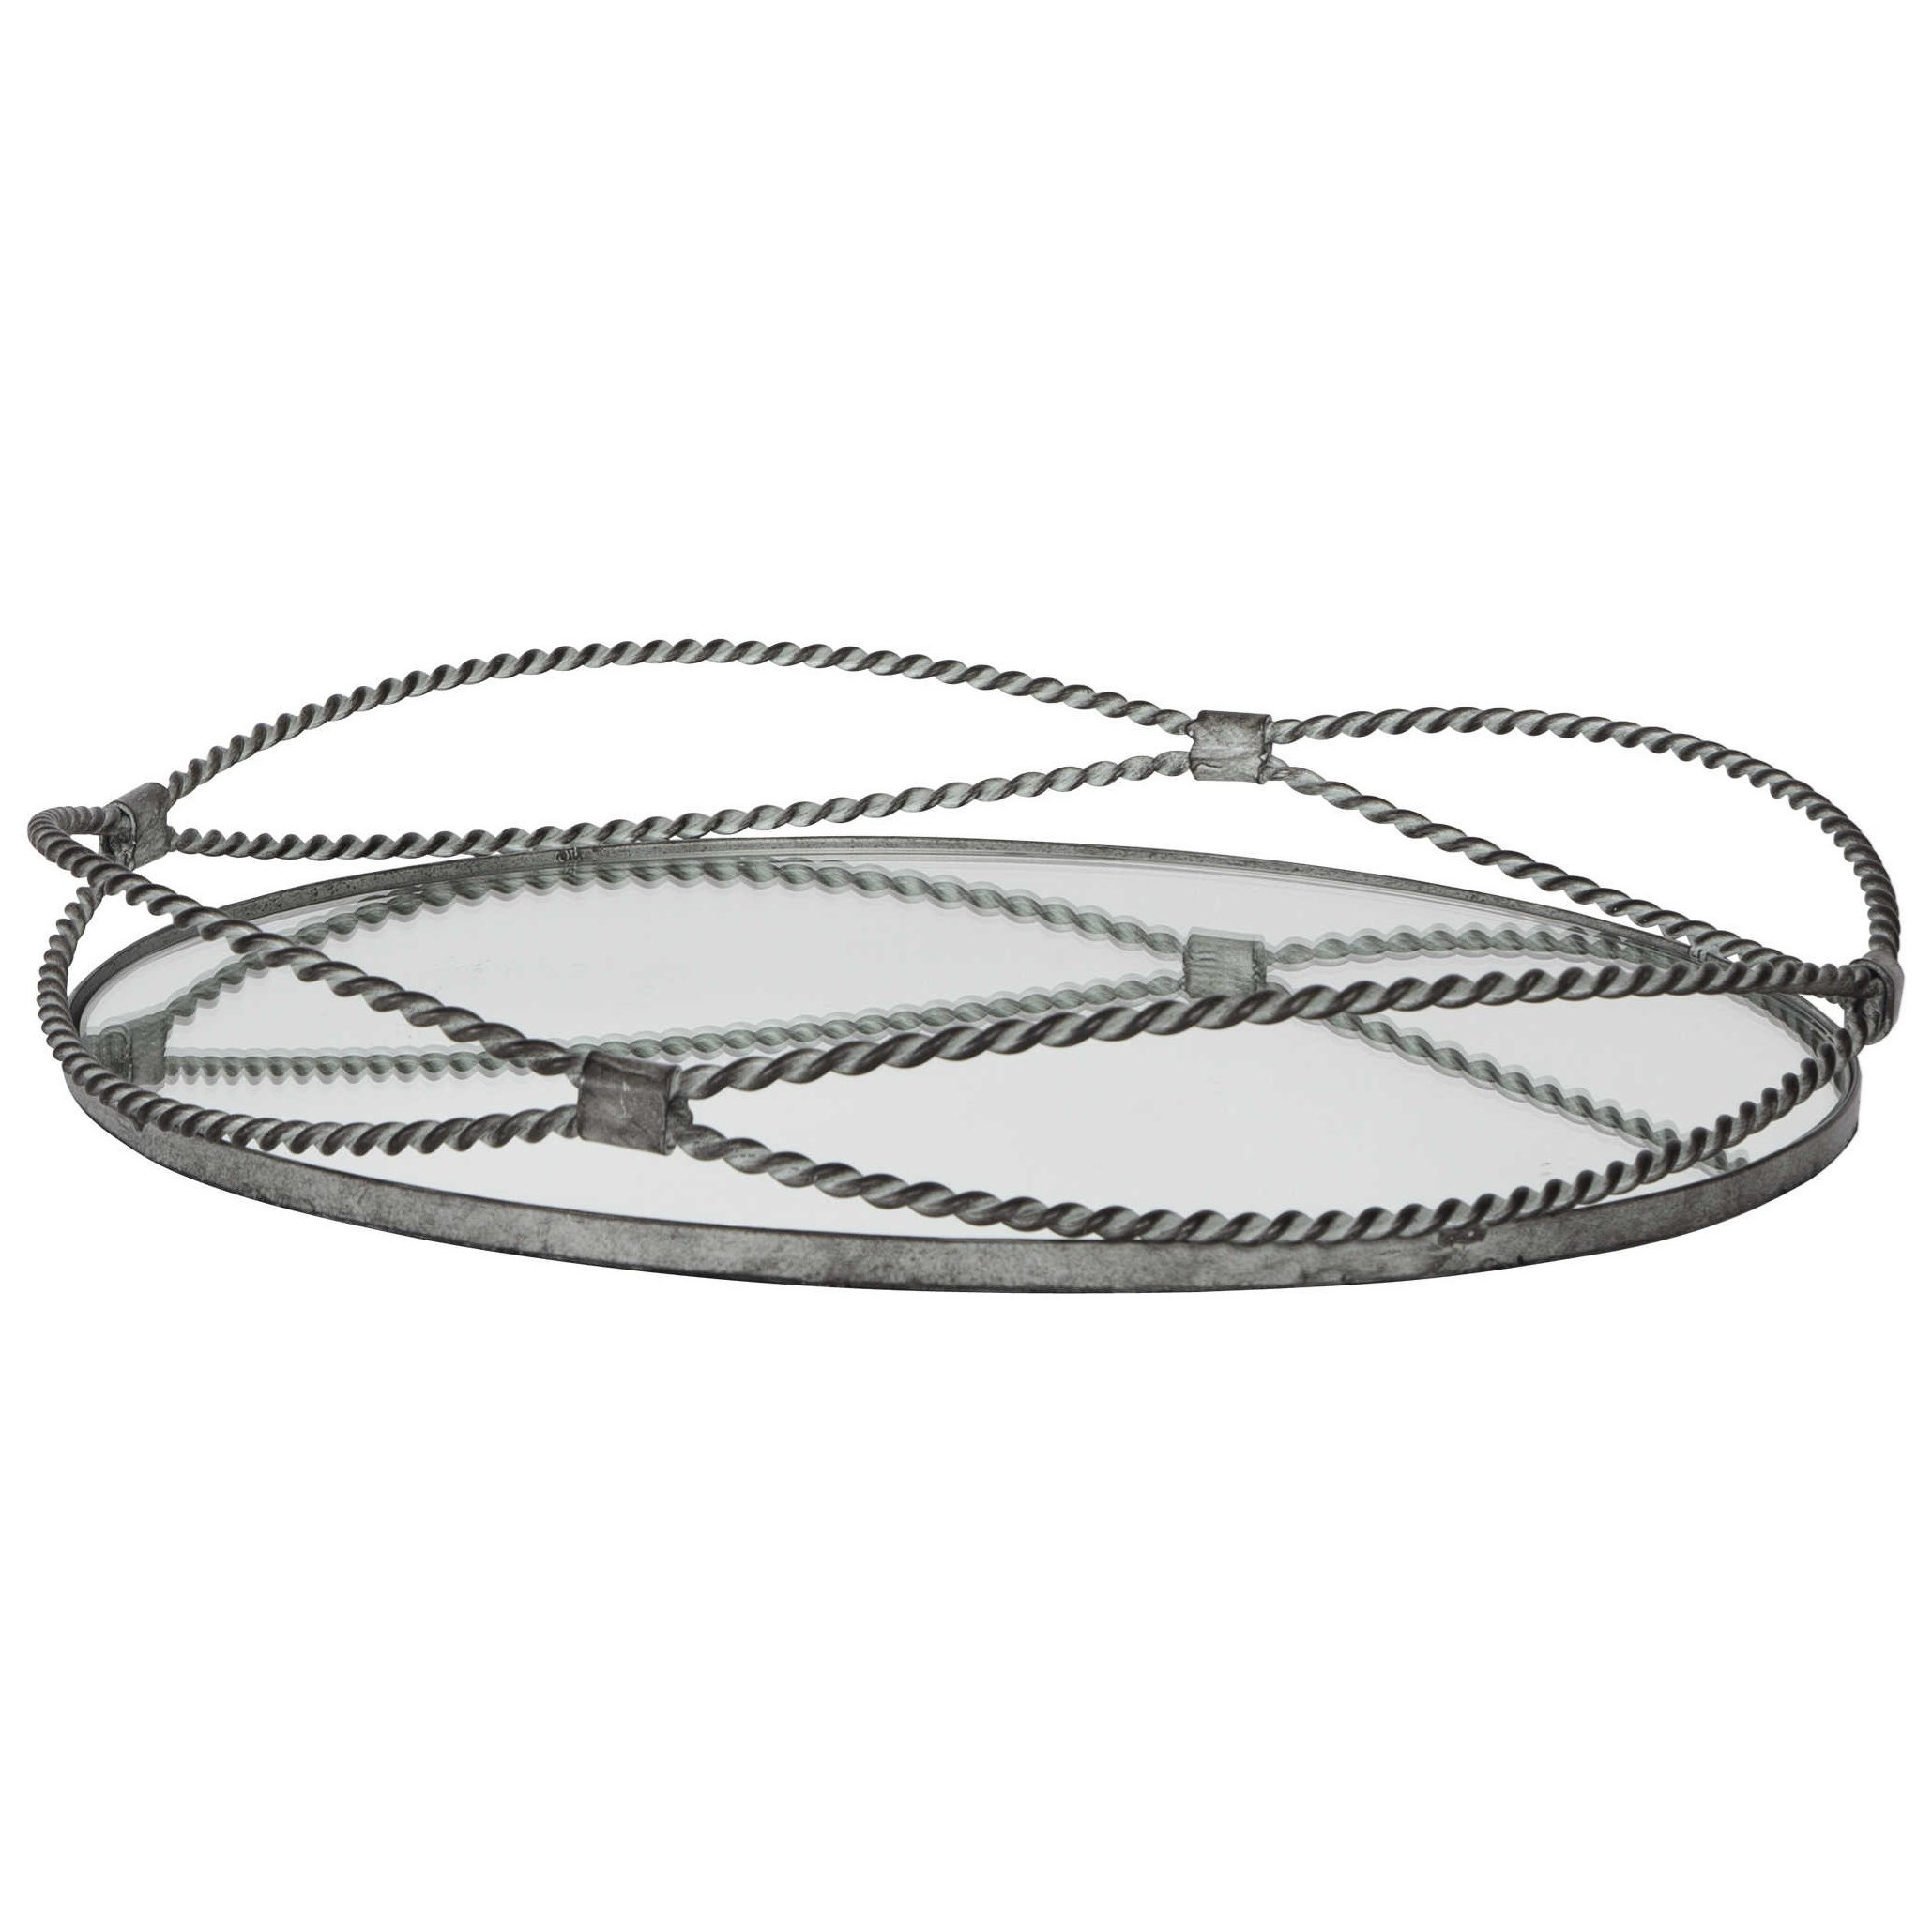 Accessories Maori Twisted Iron Tray by Uttermost at Dunk & Bright Furniture